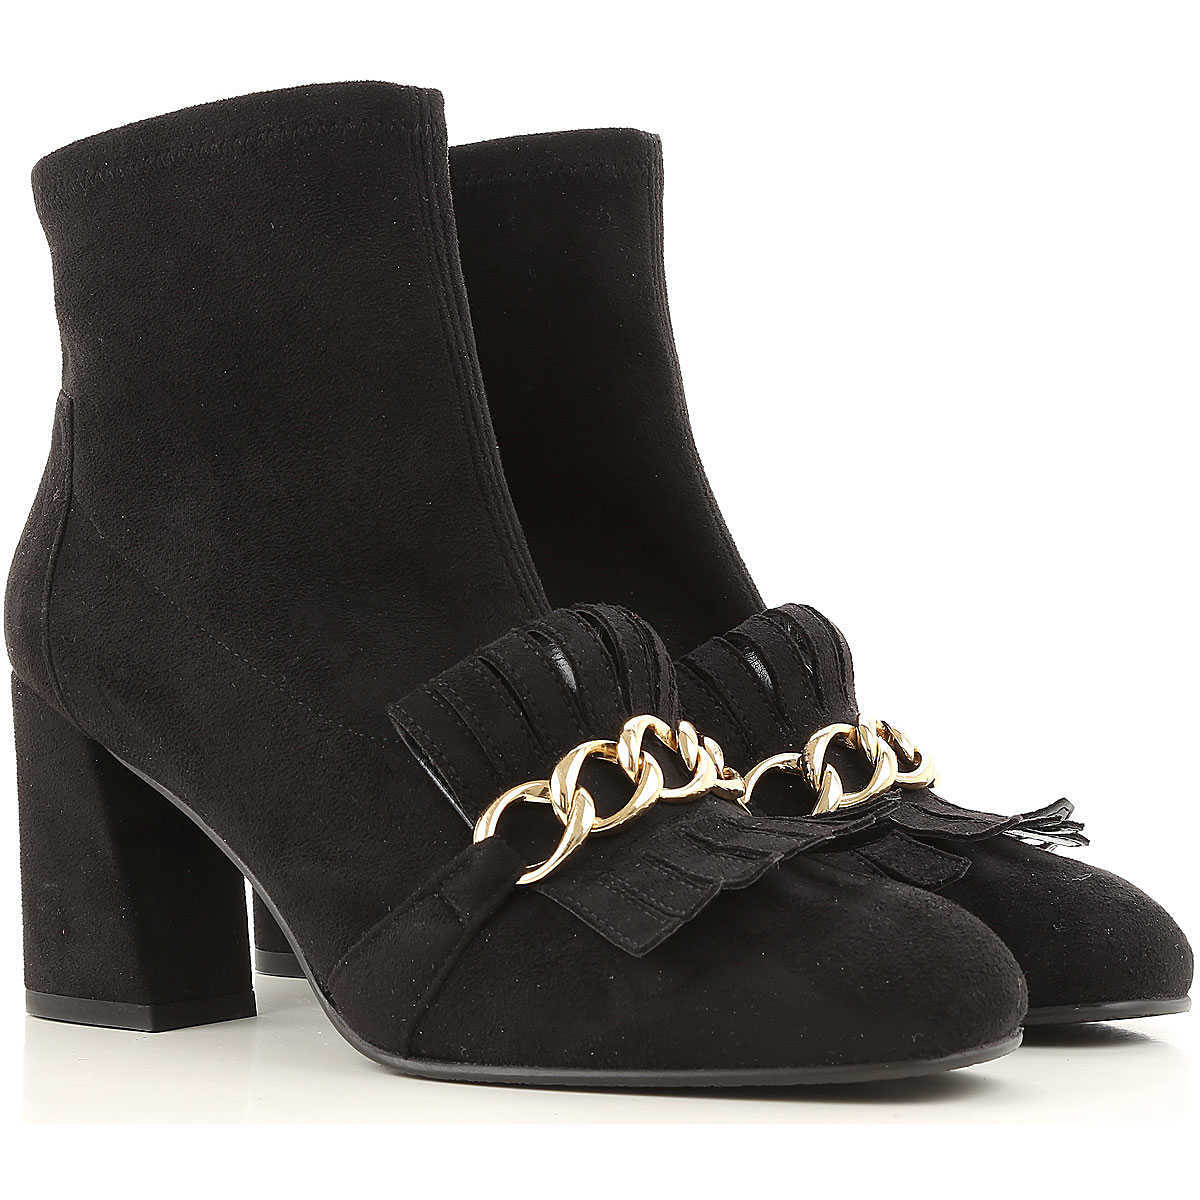 Stuart Weitzman Boots for Women 5.5 6 Booties On Sale in Outlet UK - GOOFASH